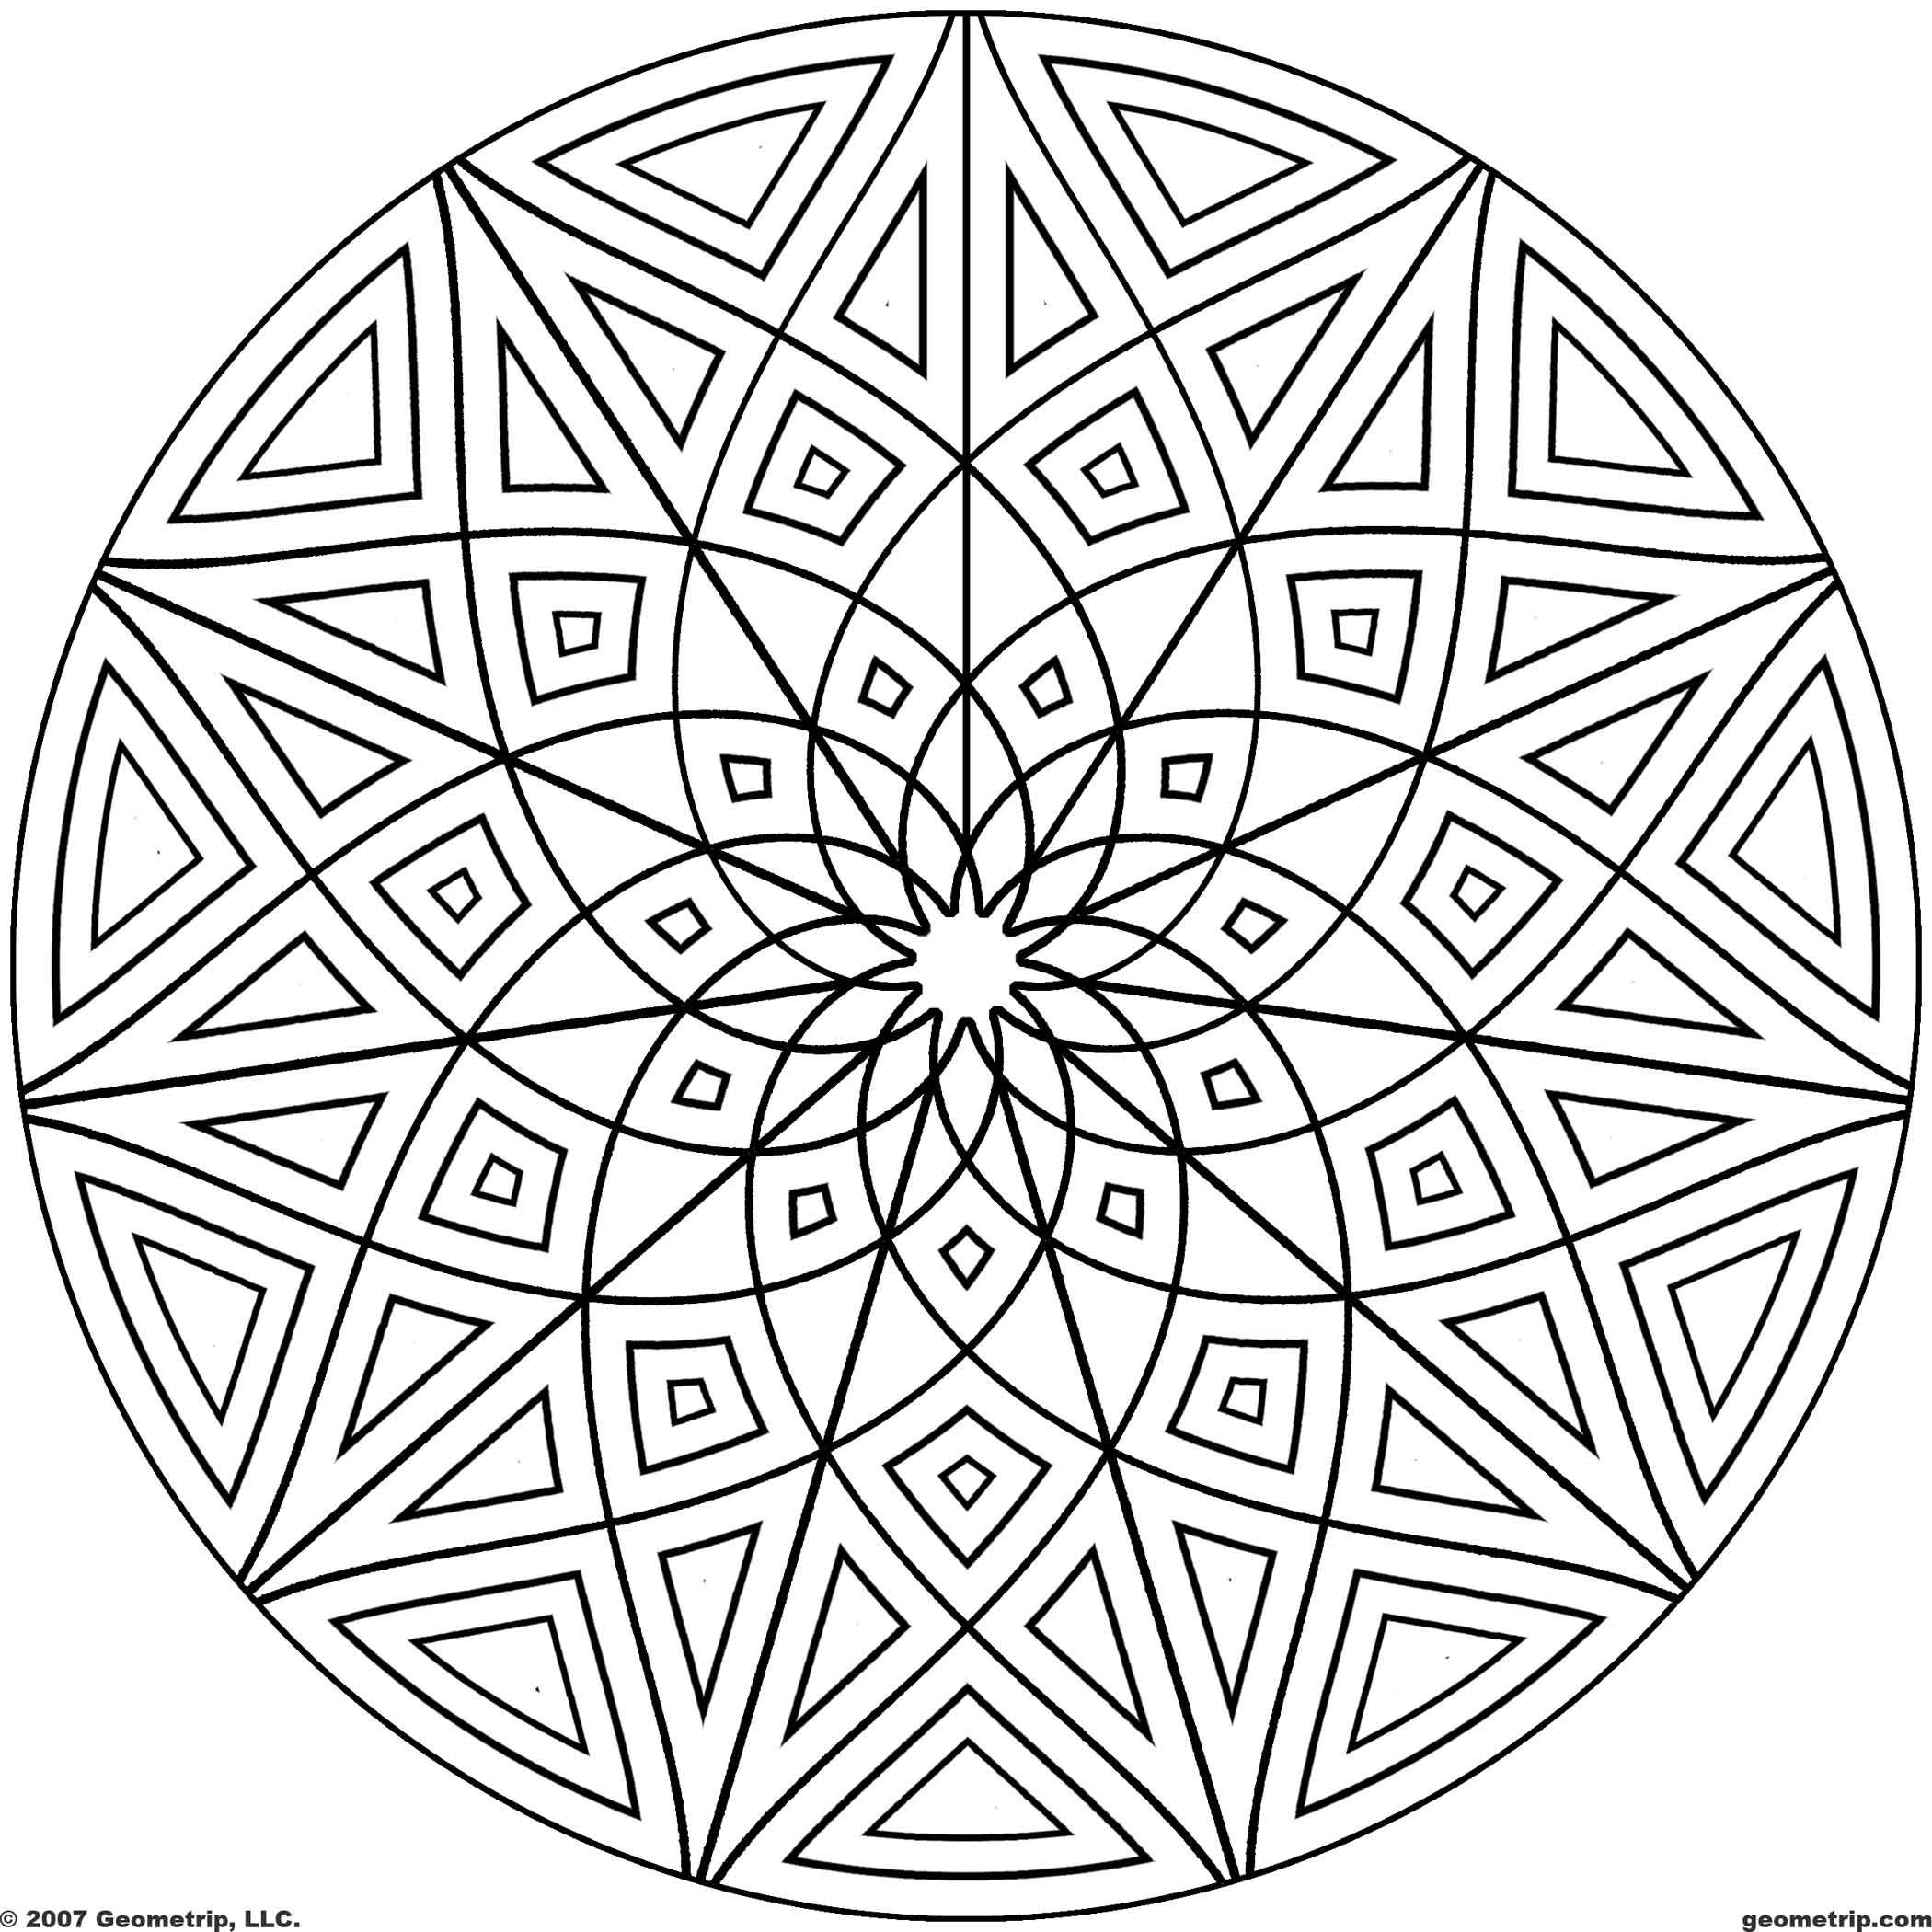 Kaleidoscope Coloring Pages Geometrip Free